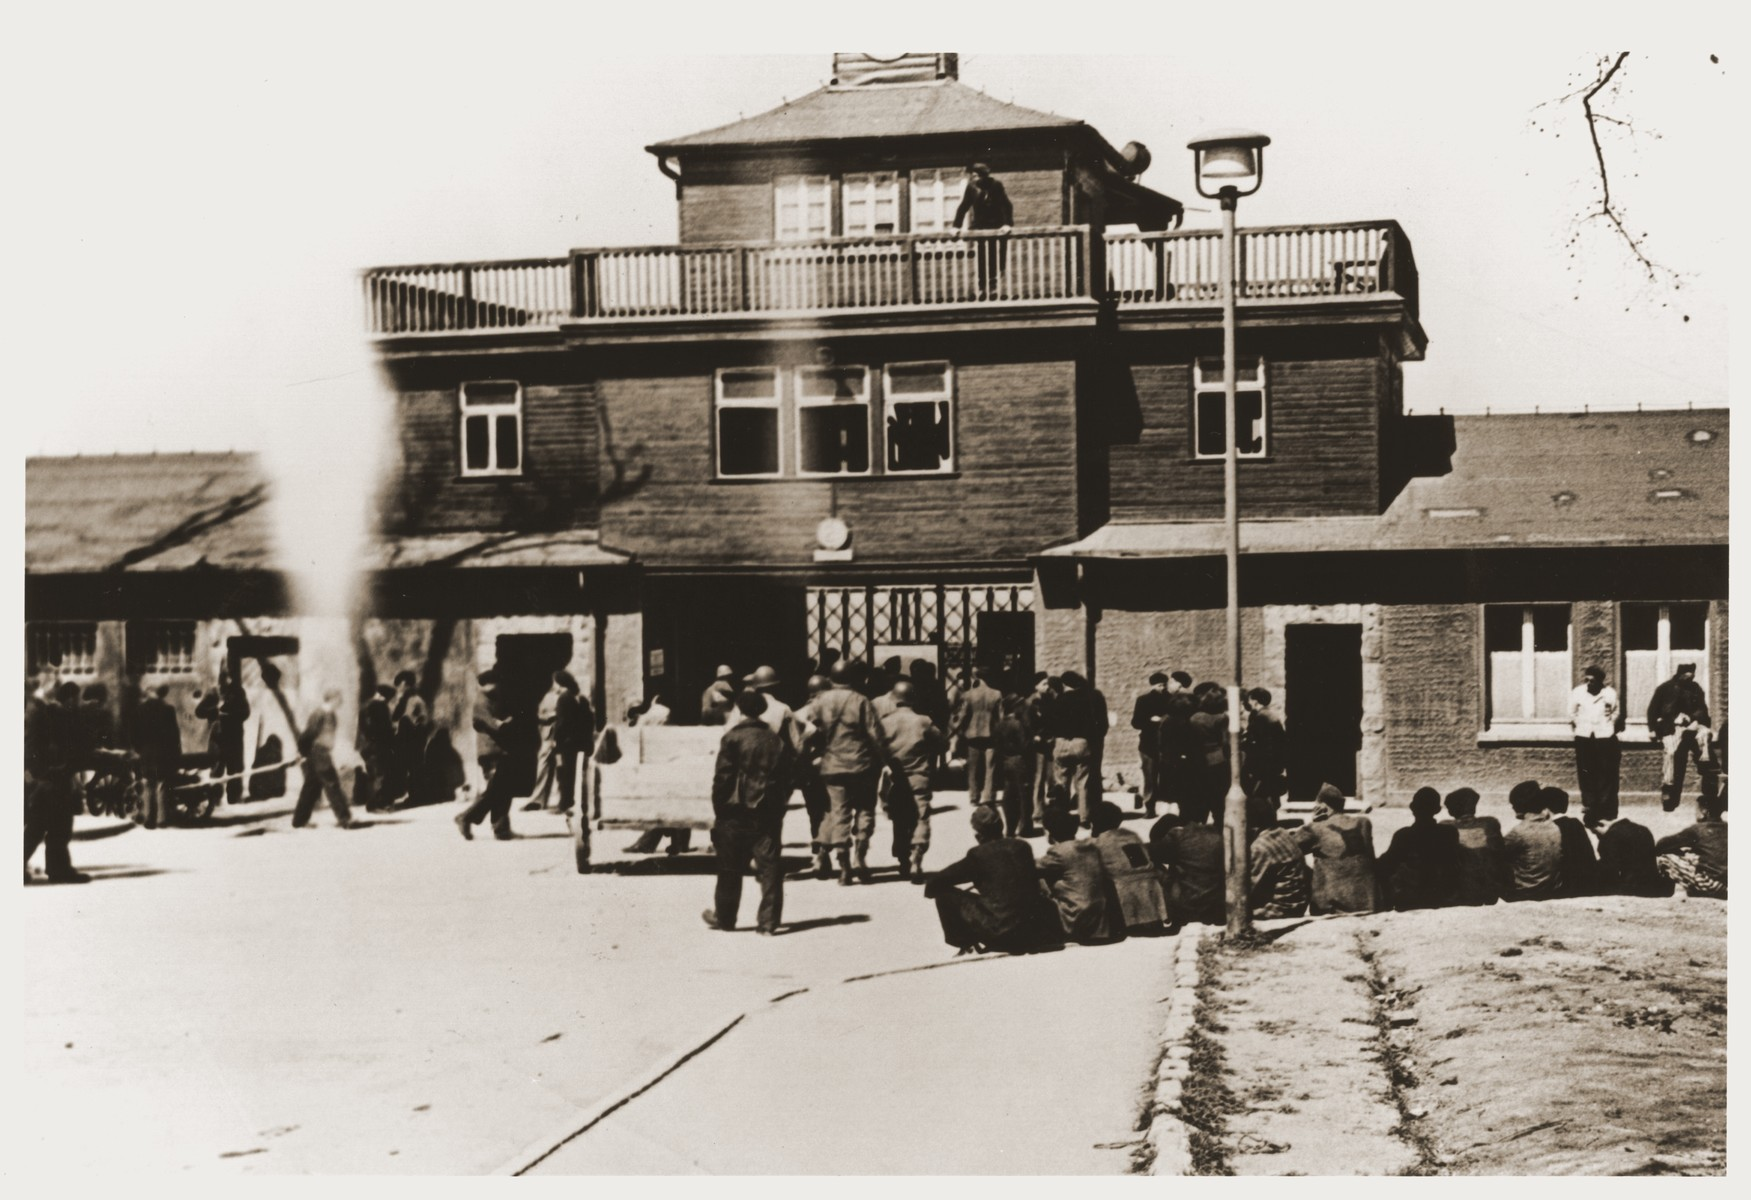 Visitors gather at the entrance to the Buchenwald concentration camp soon after liberation.